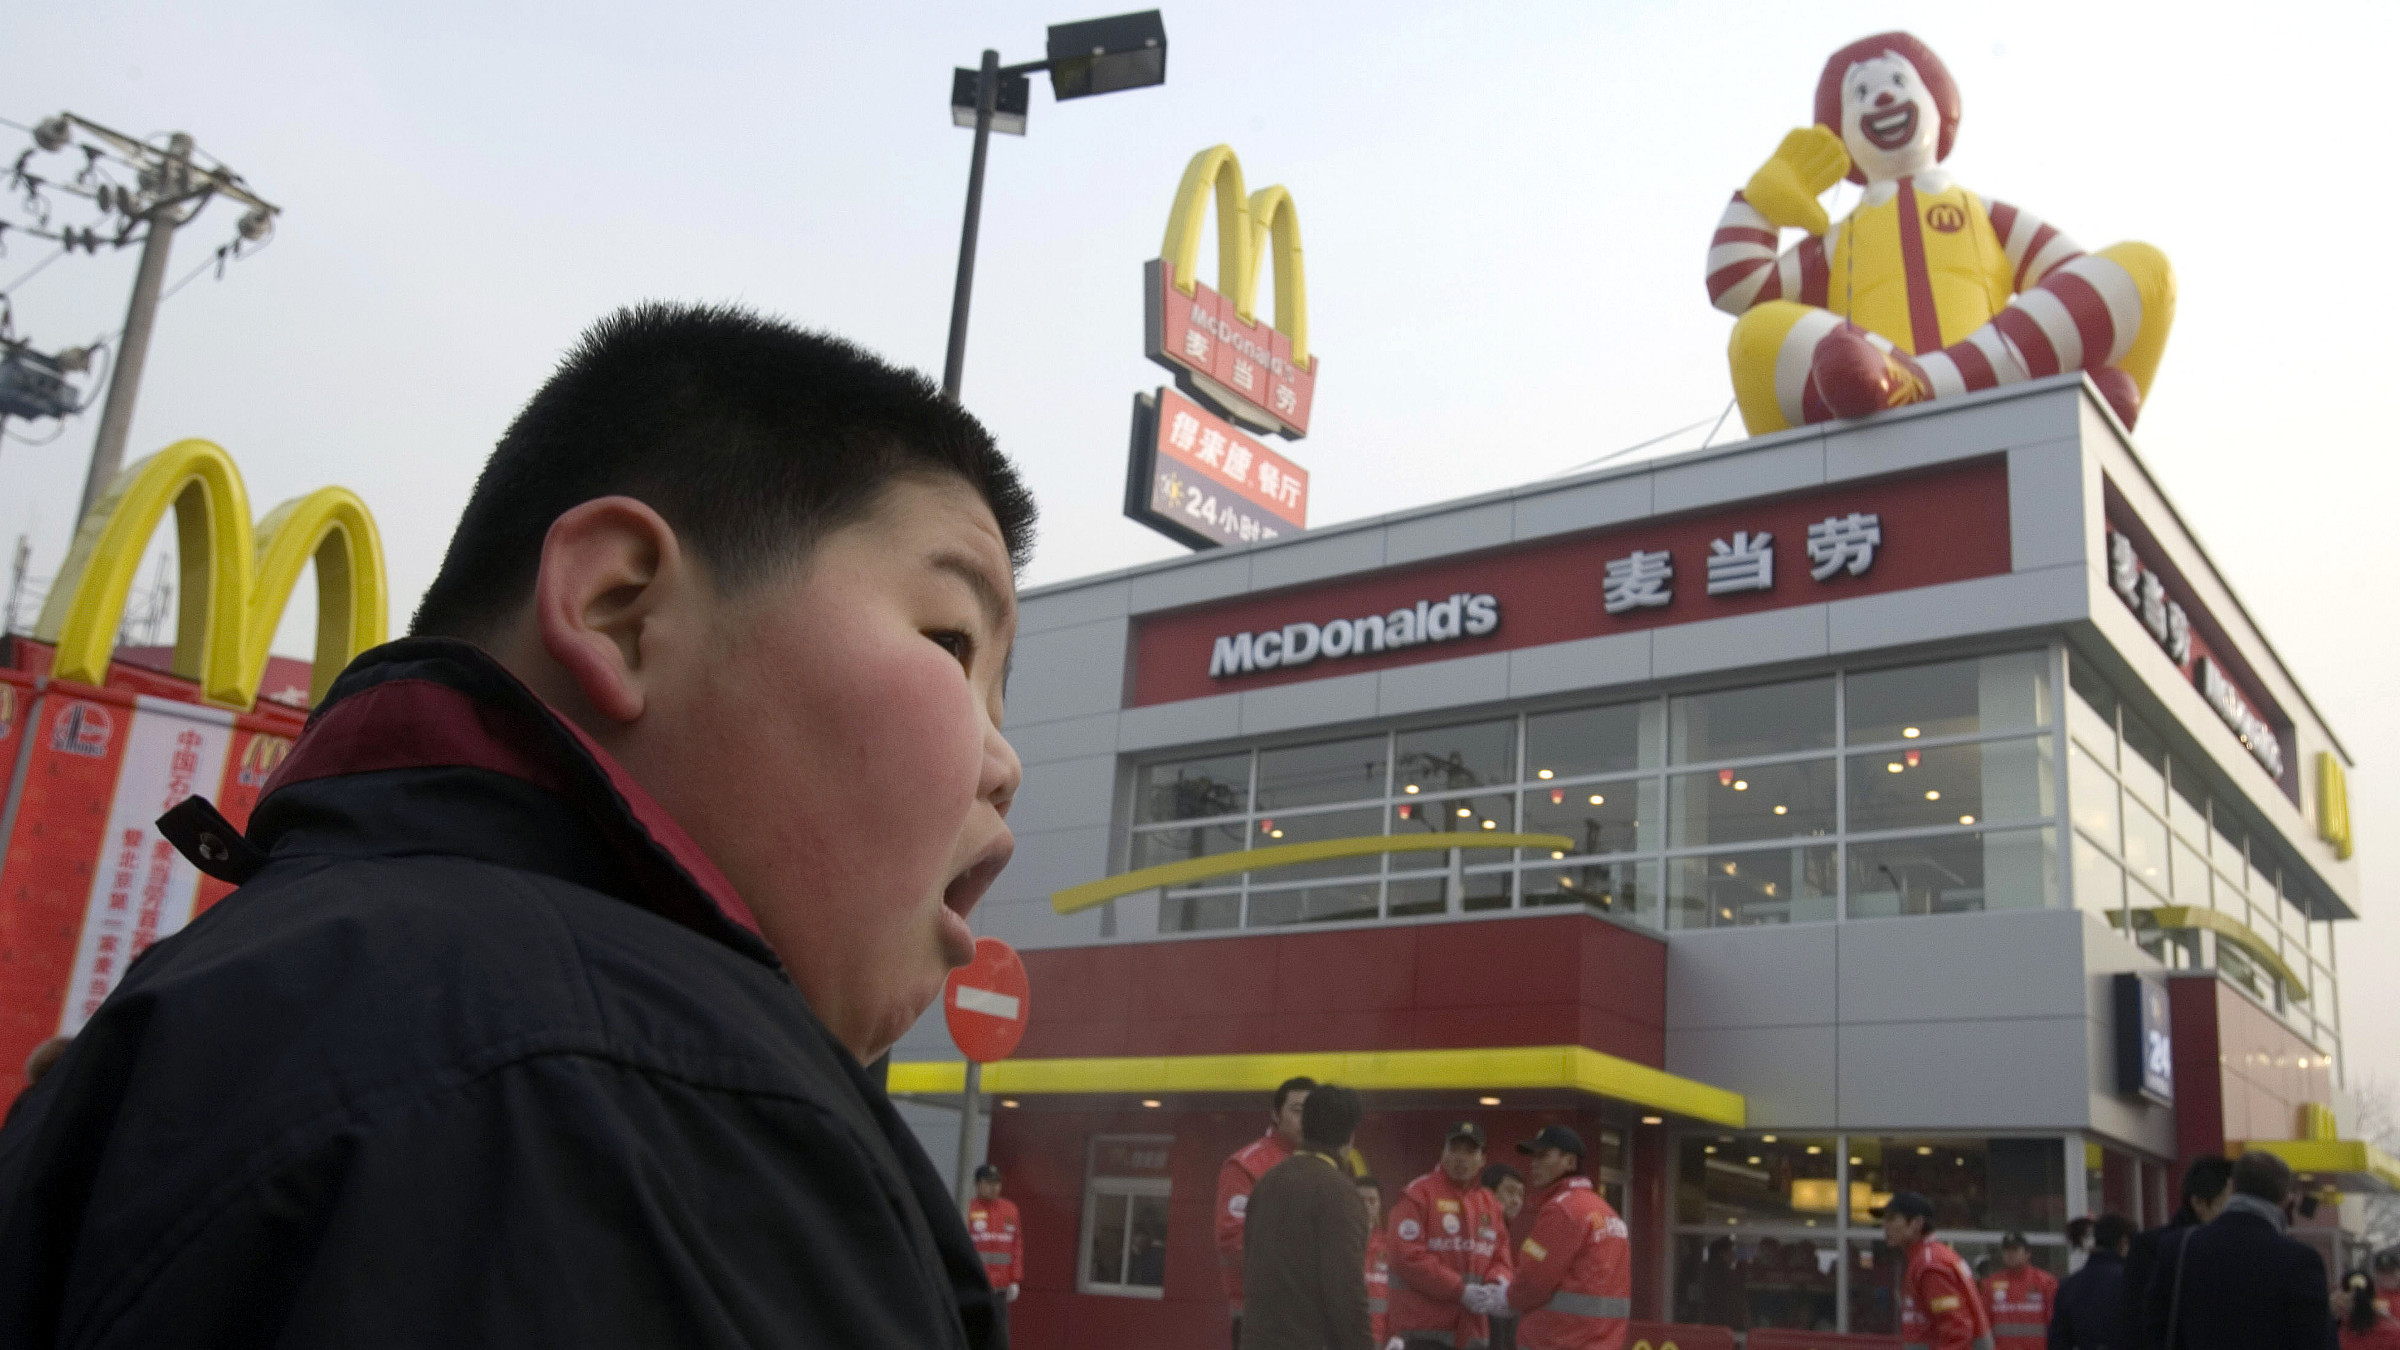 A Chinese child looks on at a new McDonald's drive-thru outlet built next to a gas station in Beijing, China, Friday, Jan. 19, 2007.